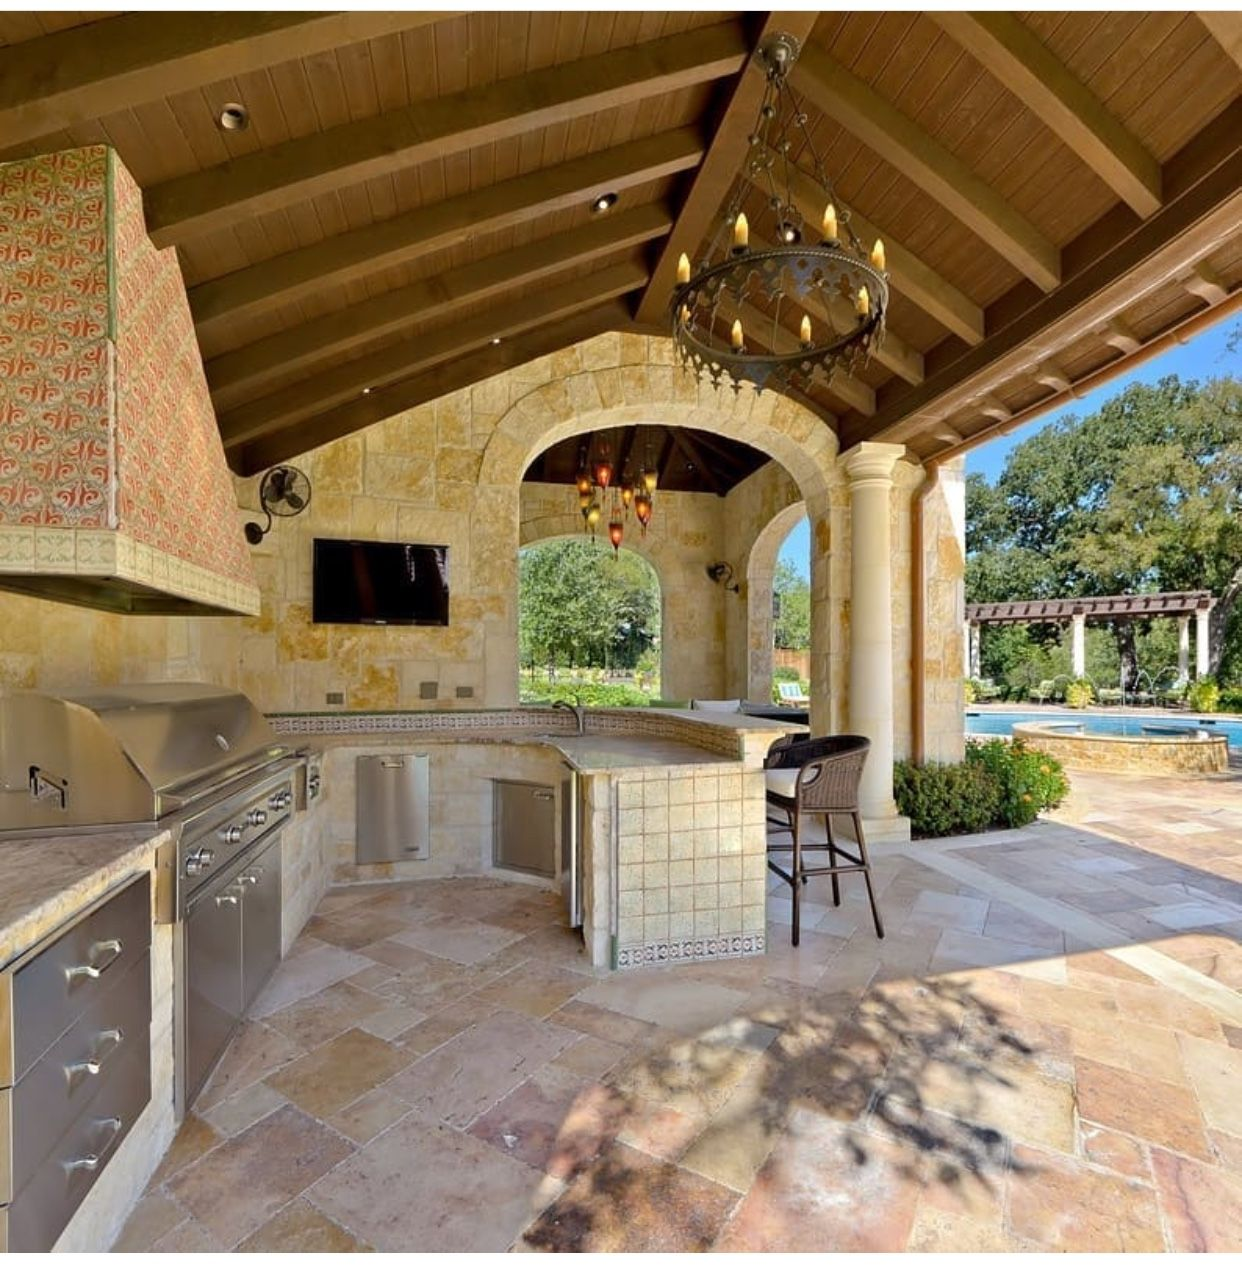 Pin by Judy Fancher on Outdoor kitchen   Outdoor kitchen